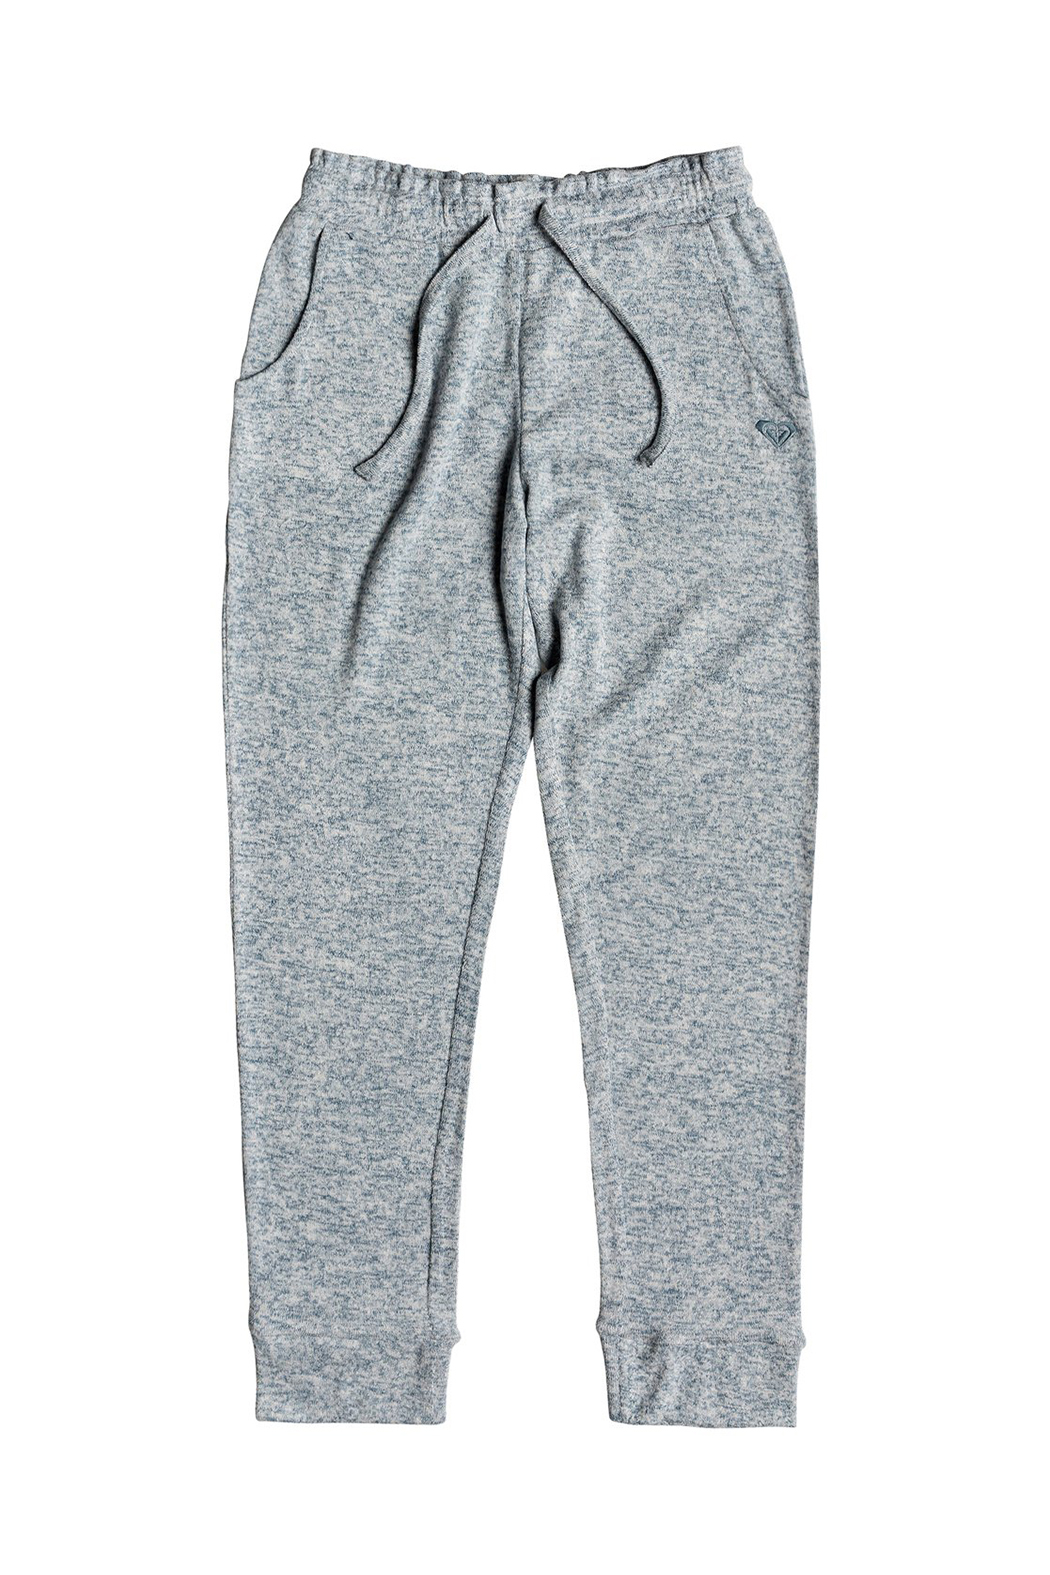 Roxy Flying Butterfly Joggers - Main Image